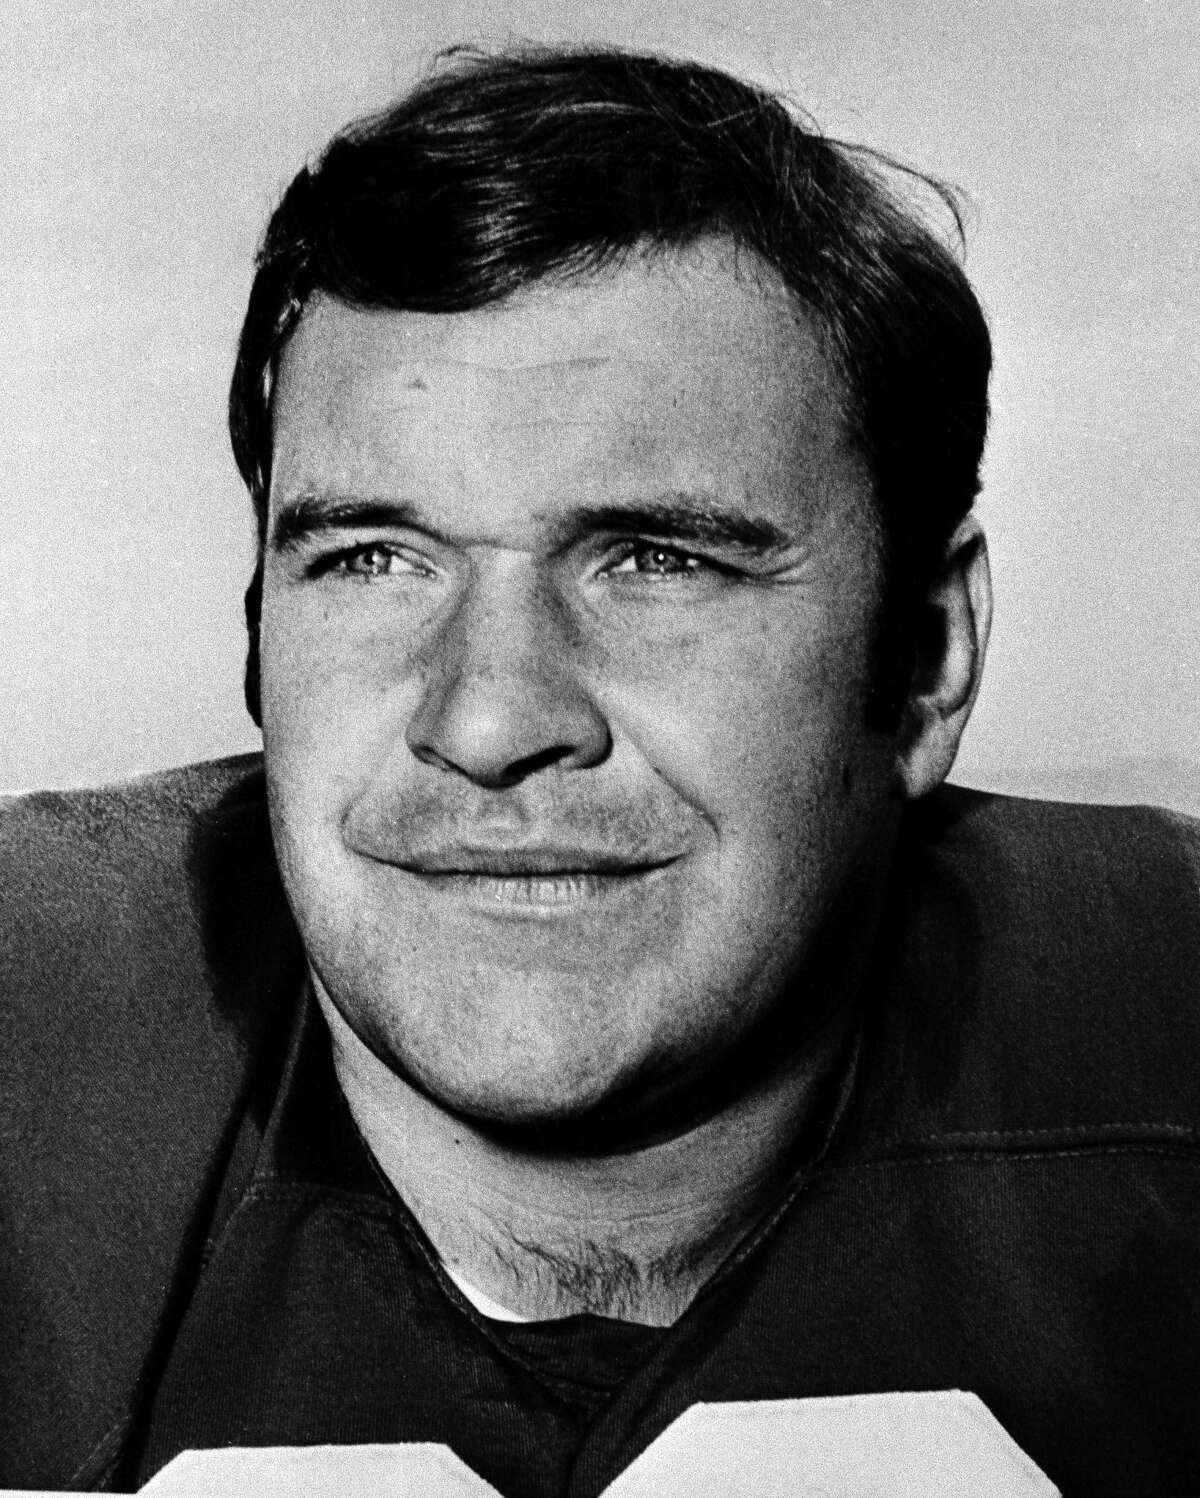 Howard Mudd, offensive guard of the San Francisco 49ers is pictured, Dec. 17, 1968. Mudd died on Aug. 12, 2020. (AP Photo)